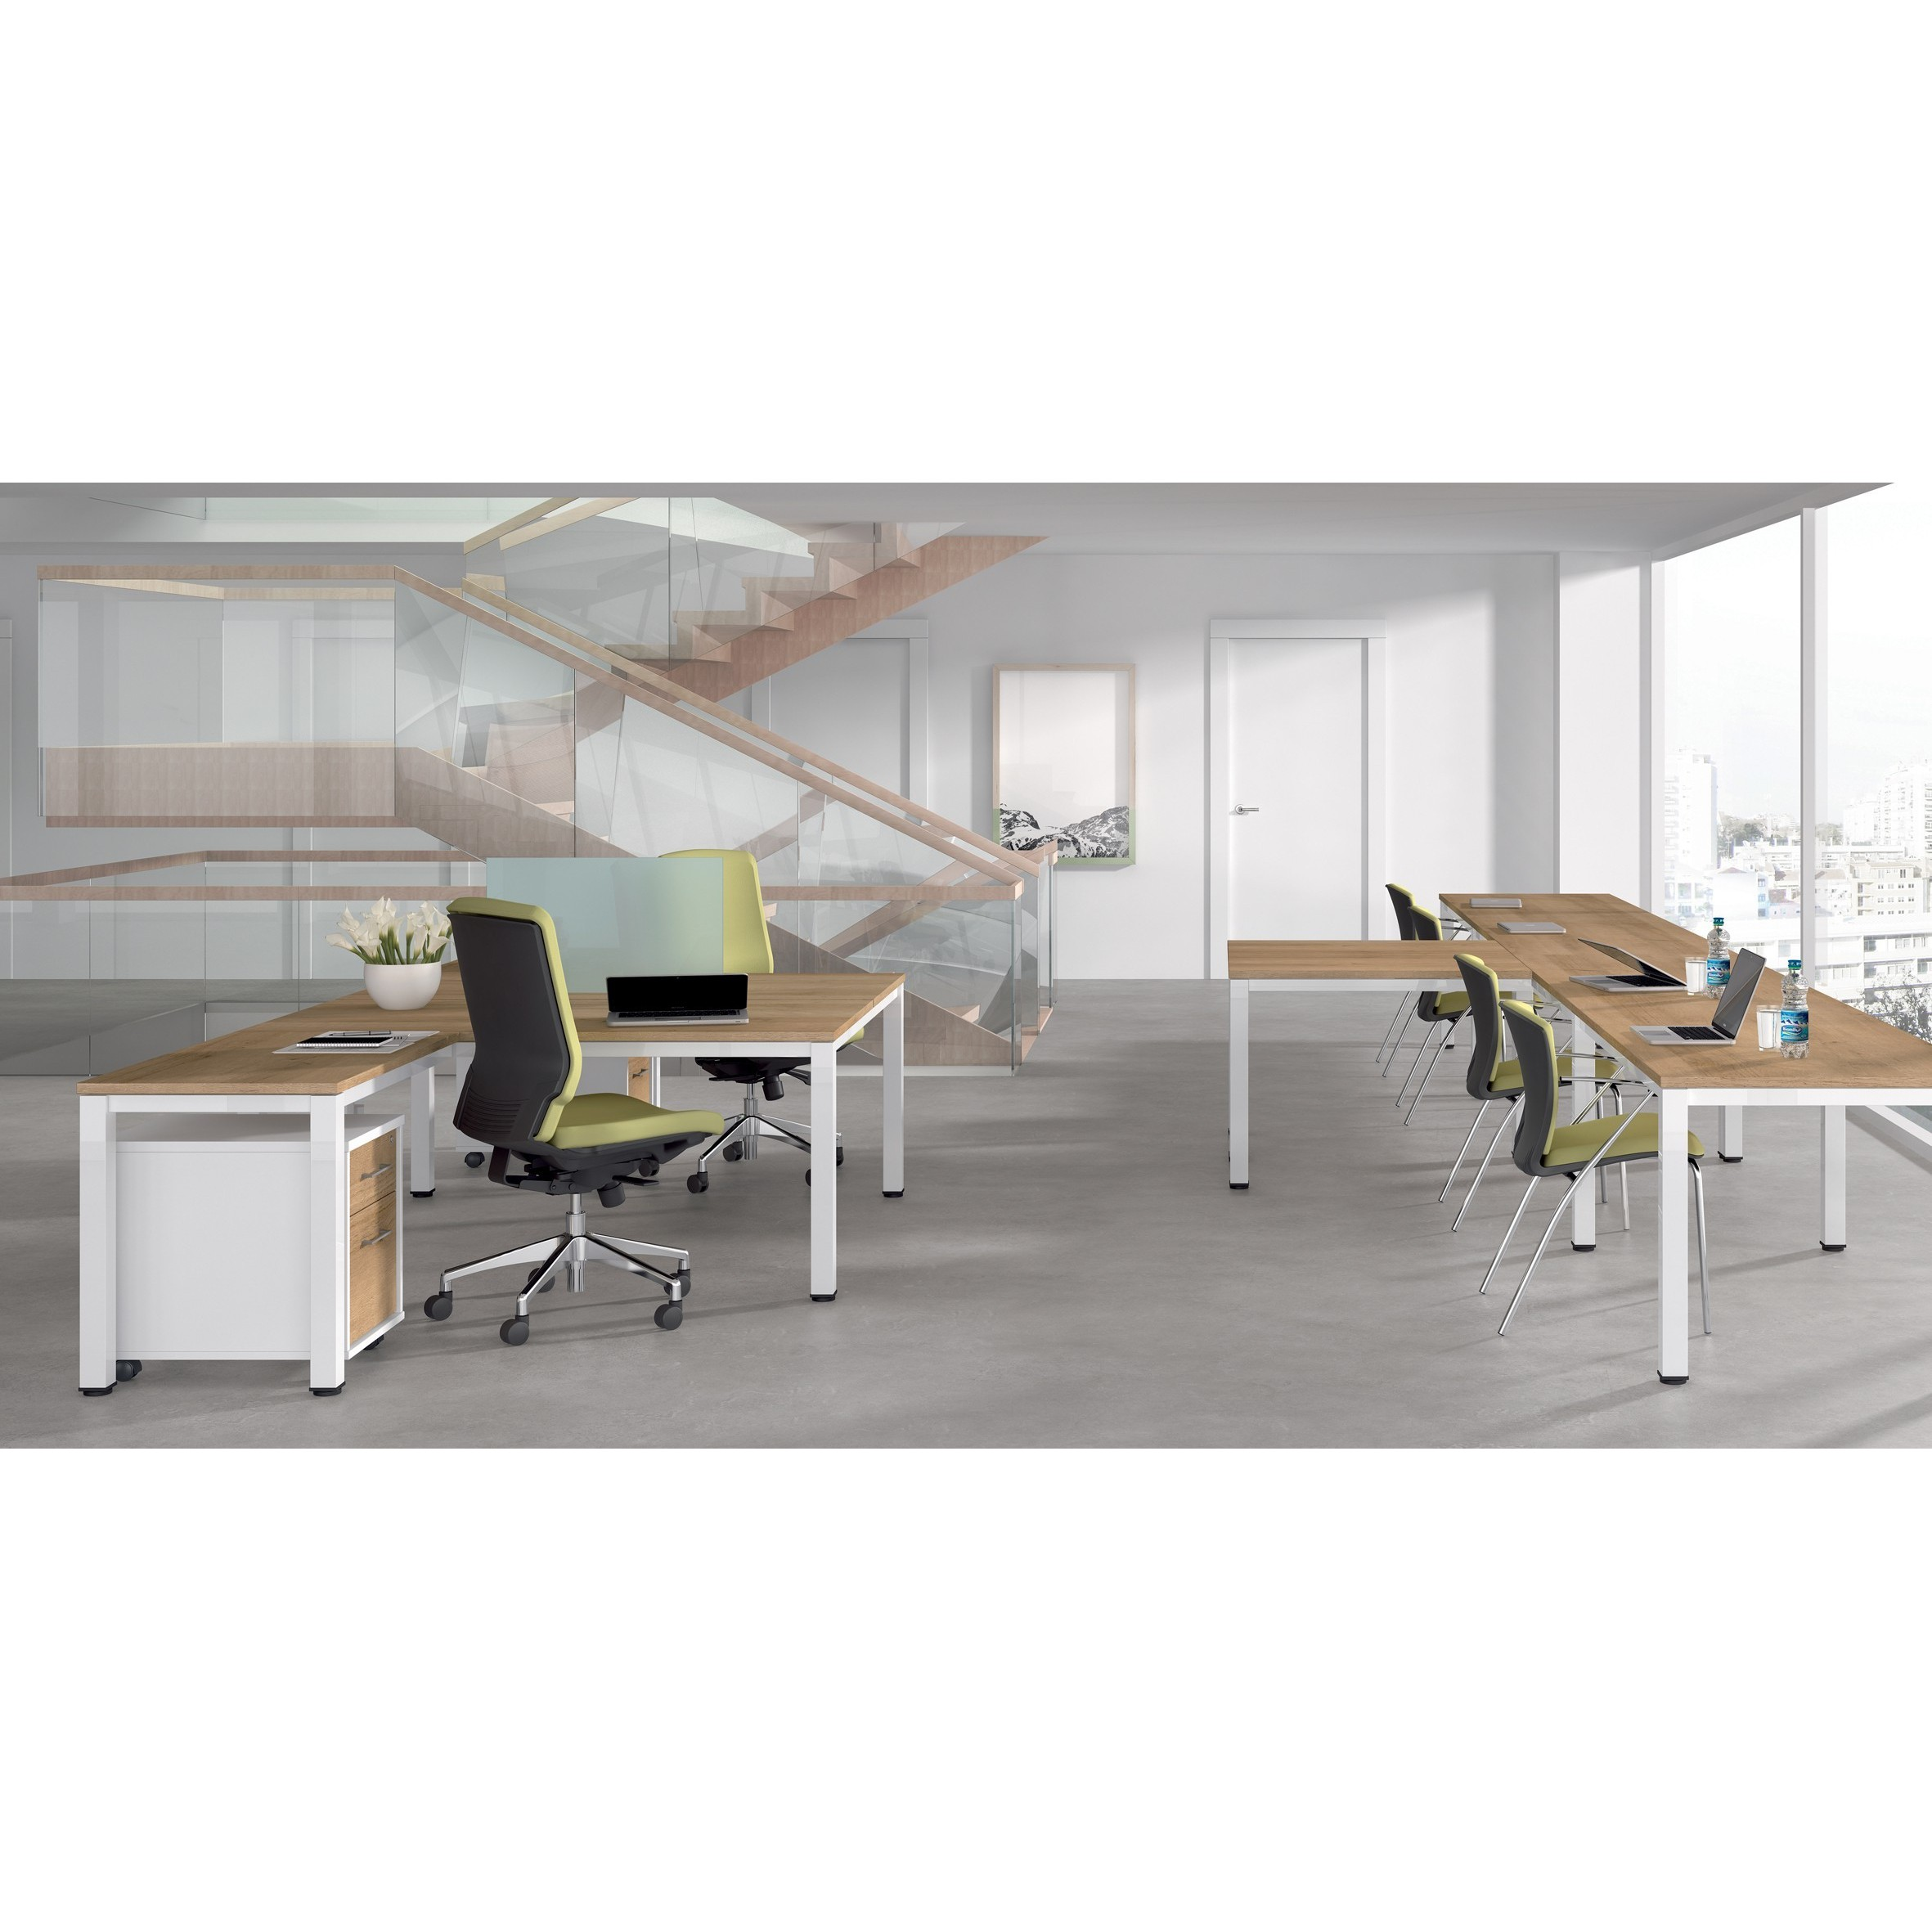 TABLE OFFICE 'S EXECUTIVE SERIES 140X80 ALUMINUM/WHITE